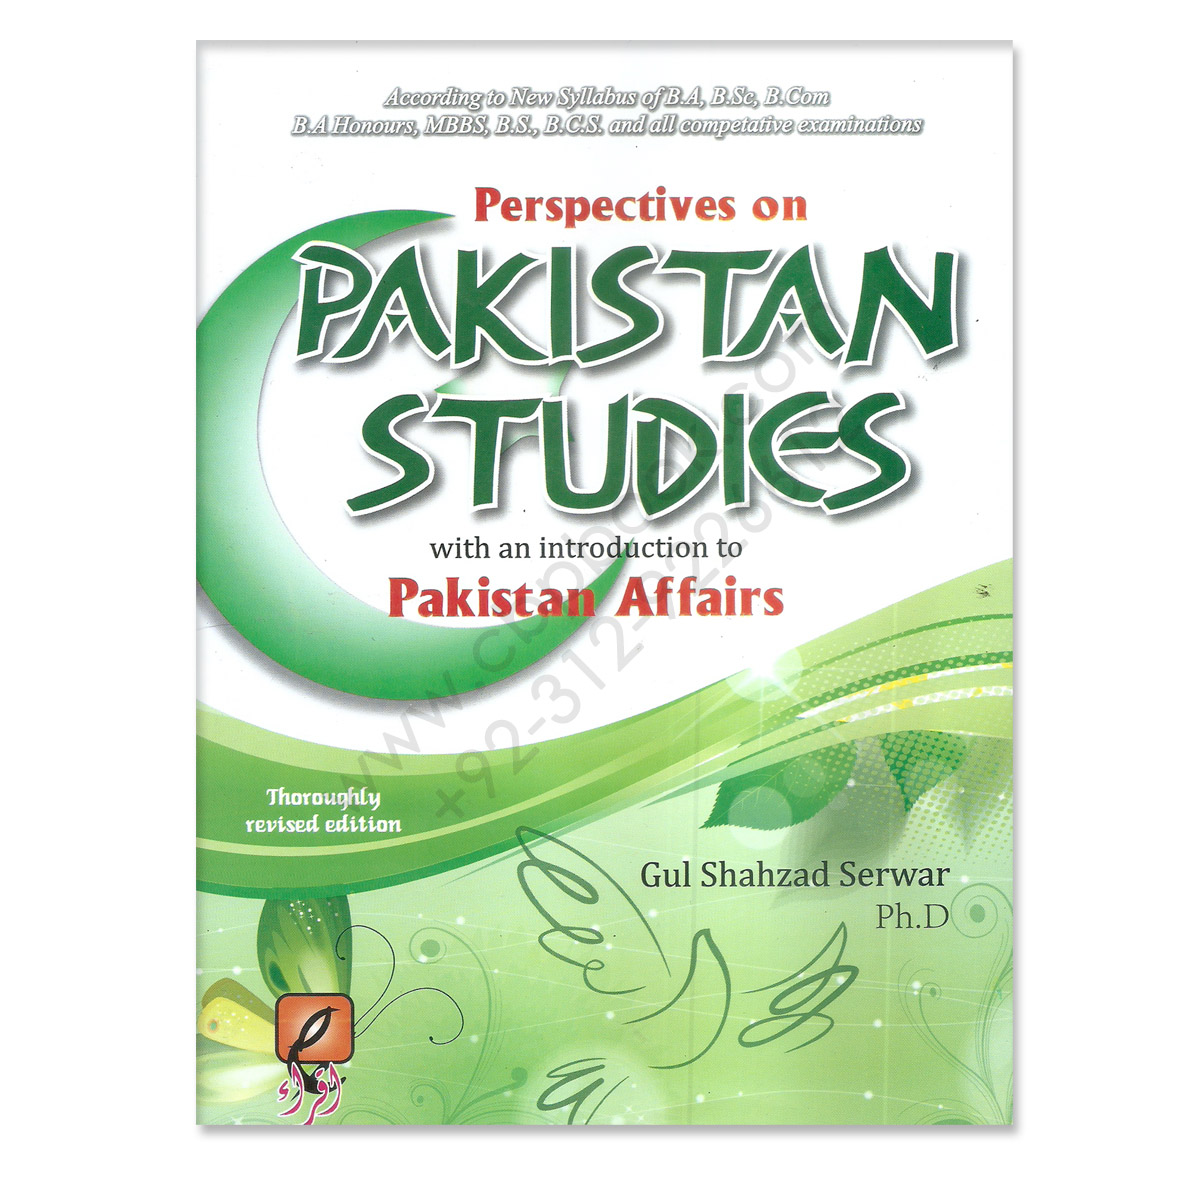 Pakistan Studies with an introduction to Pakistan Affairs By Gul Shehzad  Sarwar